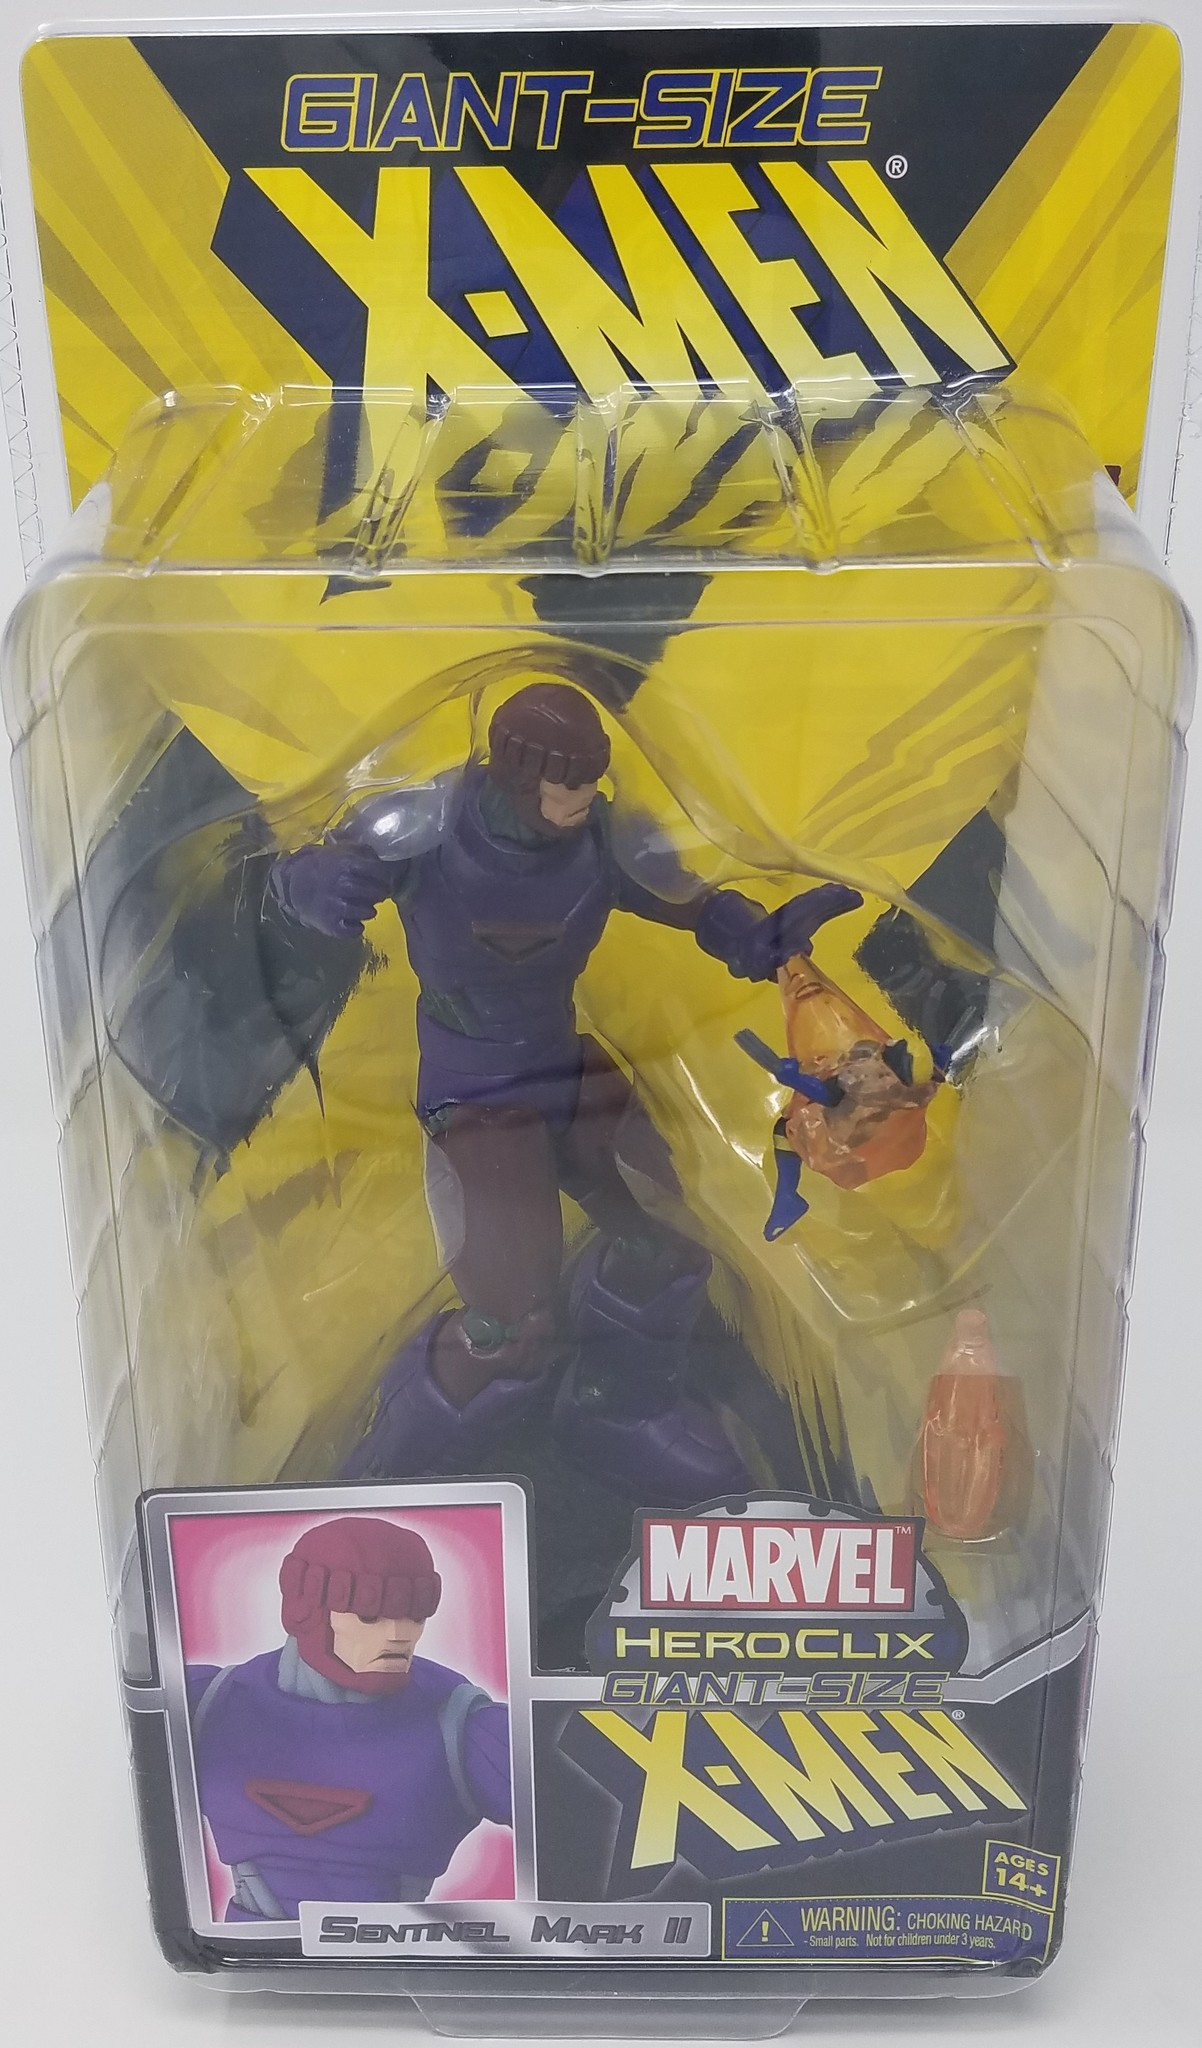 Heroclix Giant-Sized X-men: Sentinel Mark II